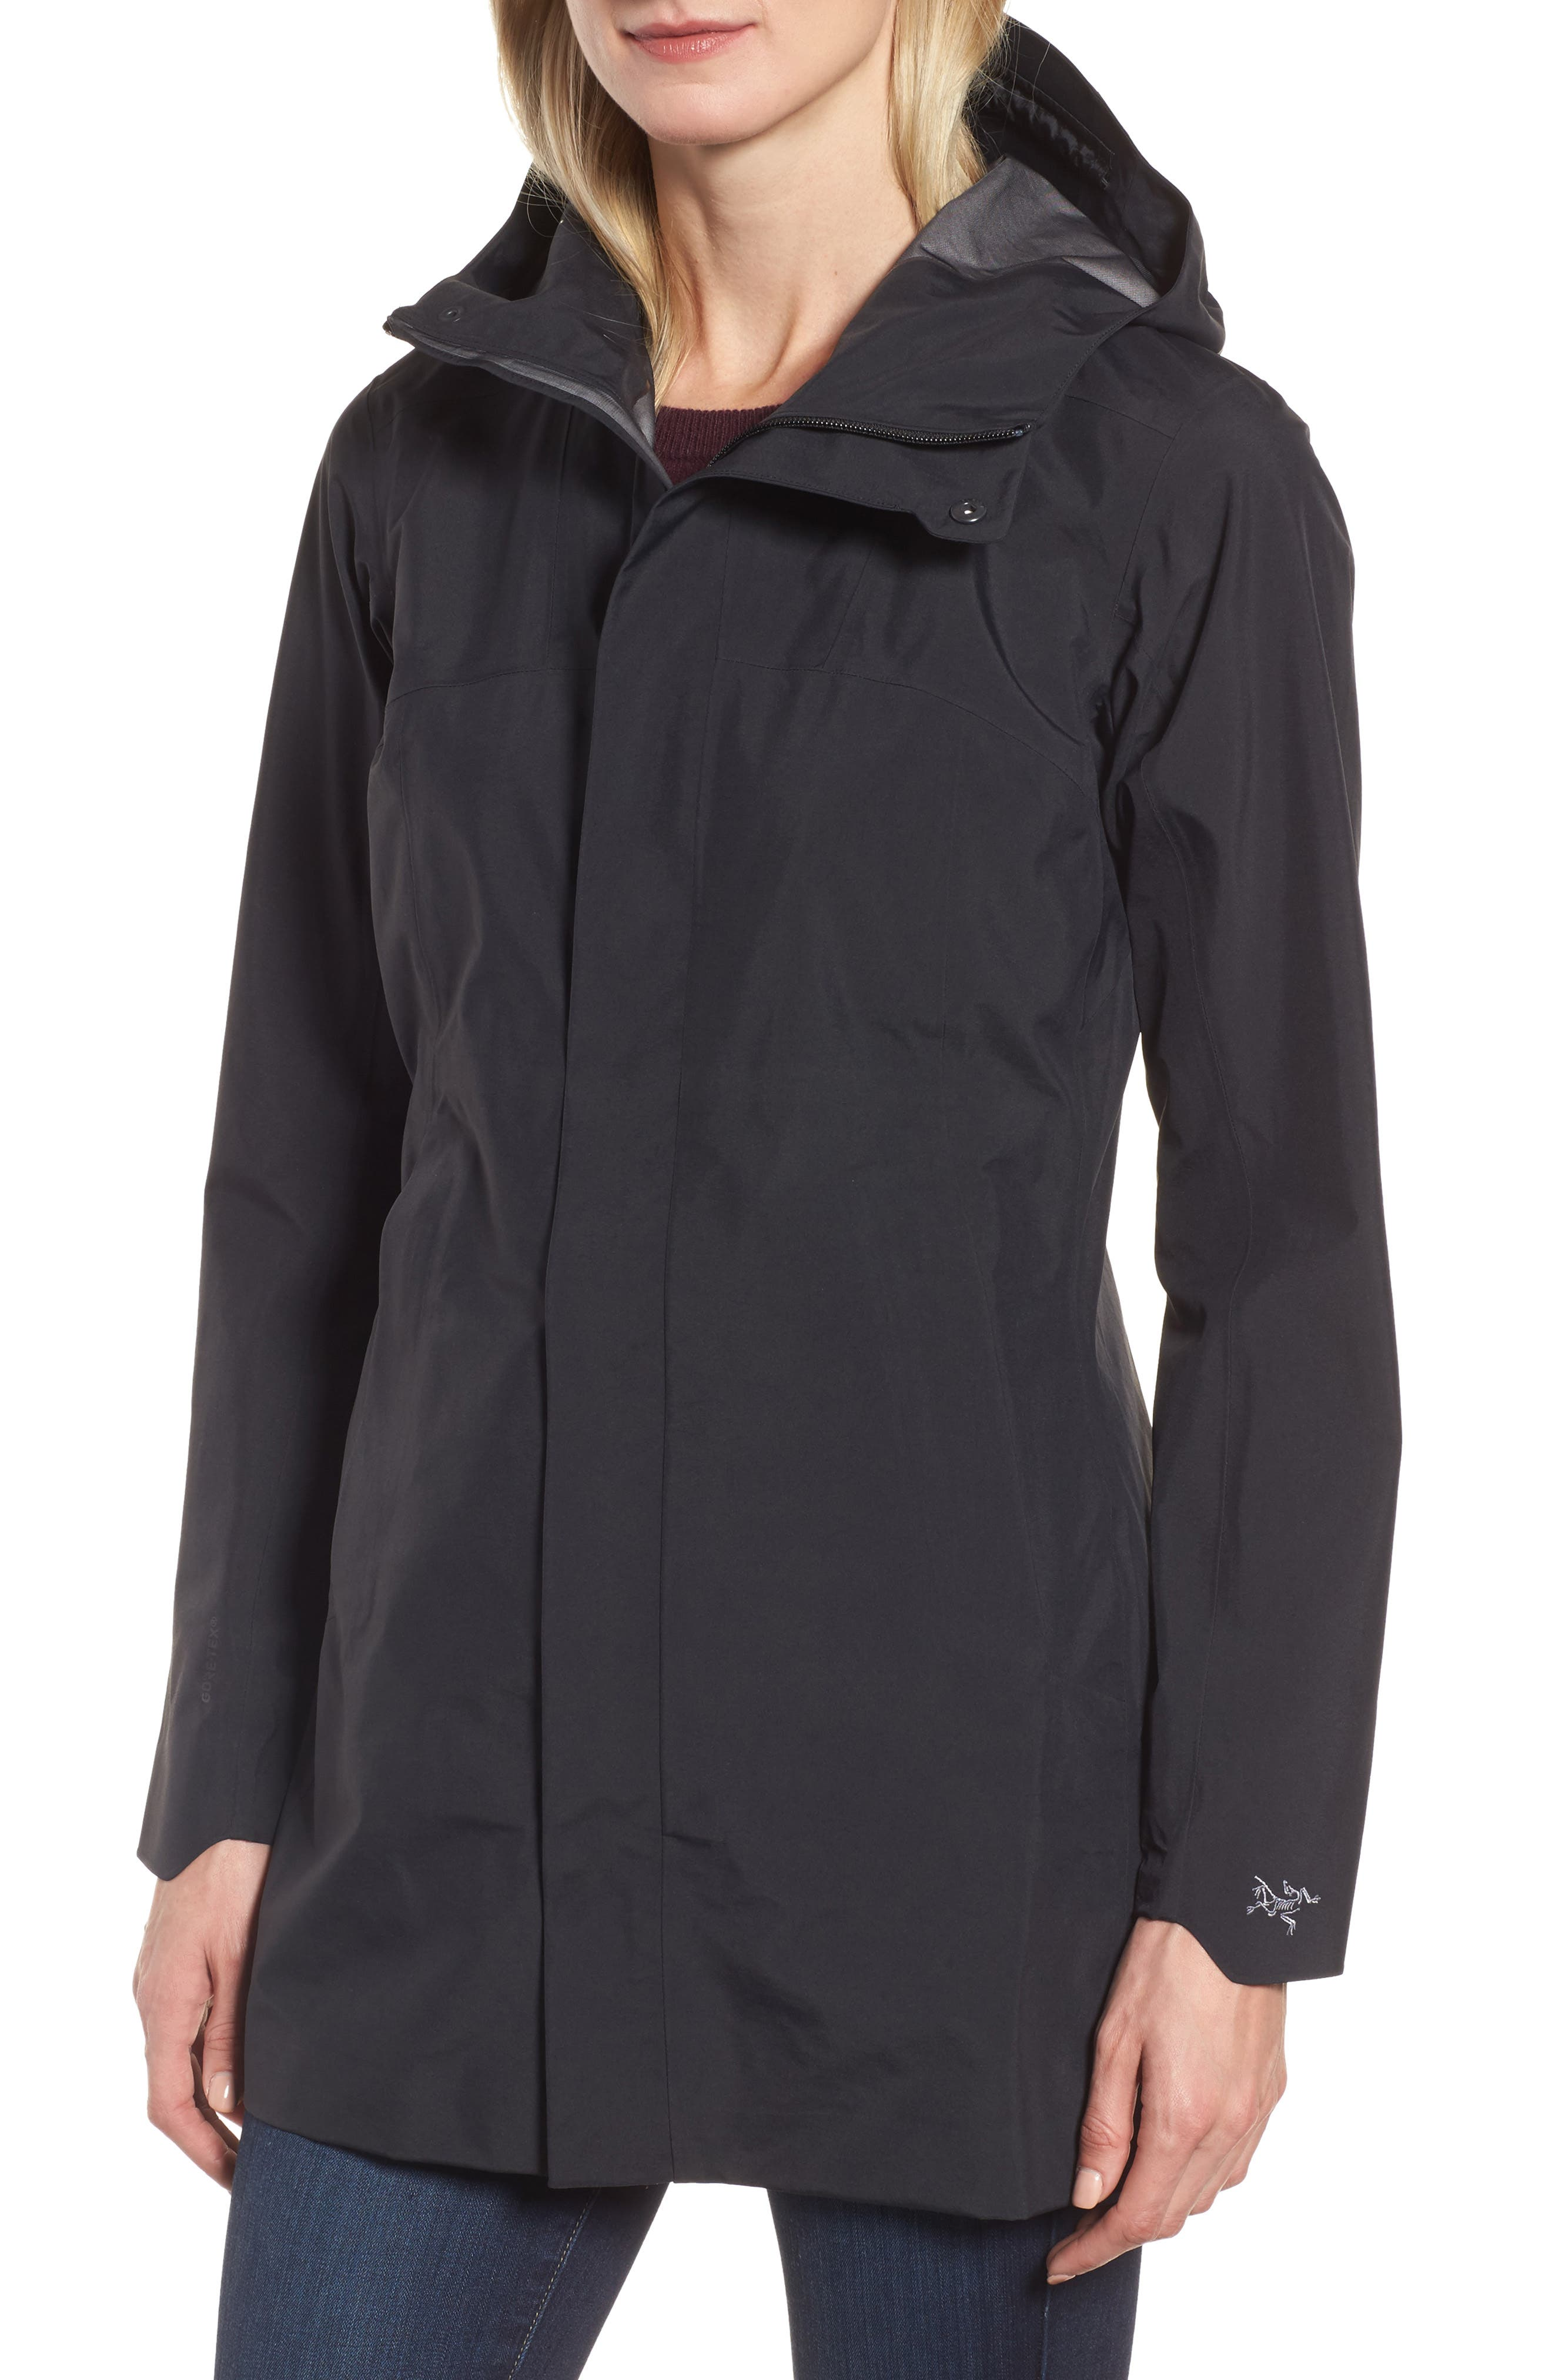 Codetta Waterproof Relaxed Fit Gore-Tex<sup>®</sup> 3L Rain Jacket,                             Alternate thumbnail 4, color,                             Black